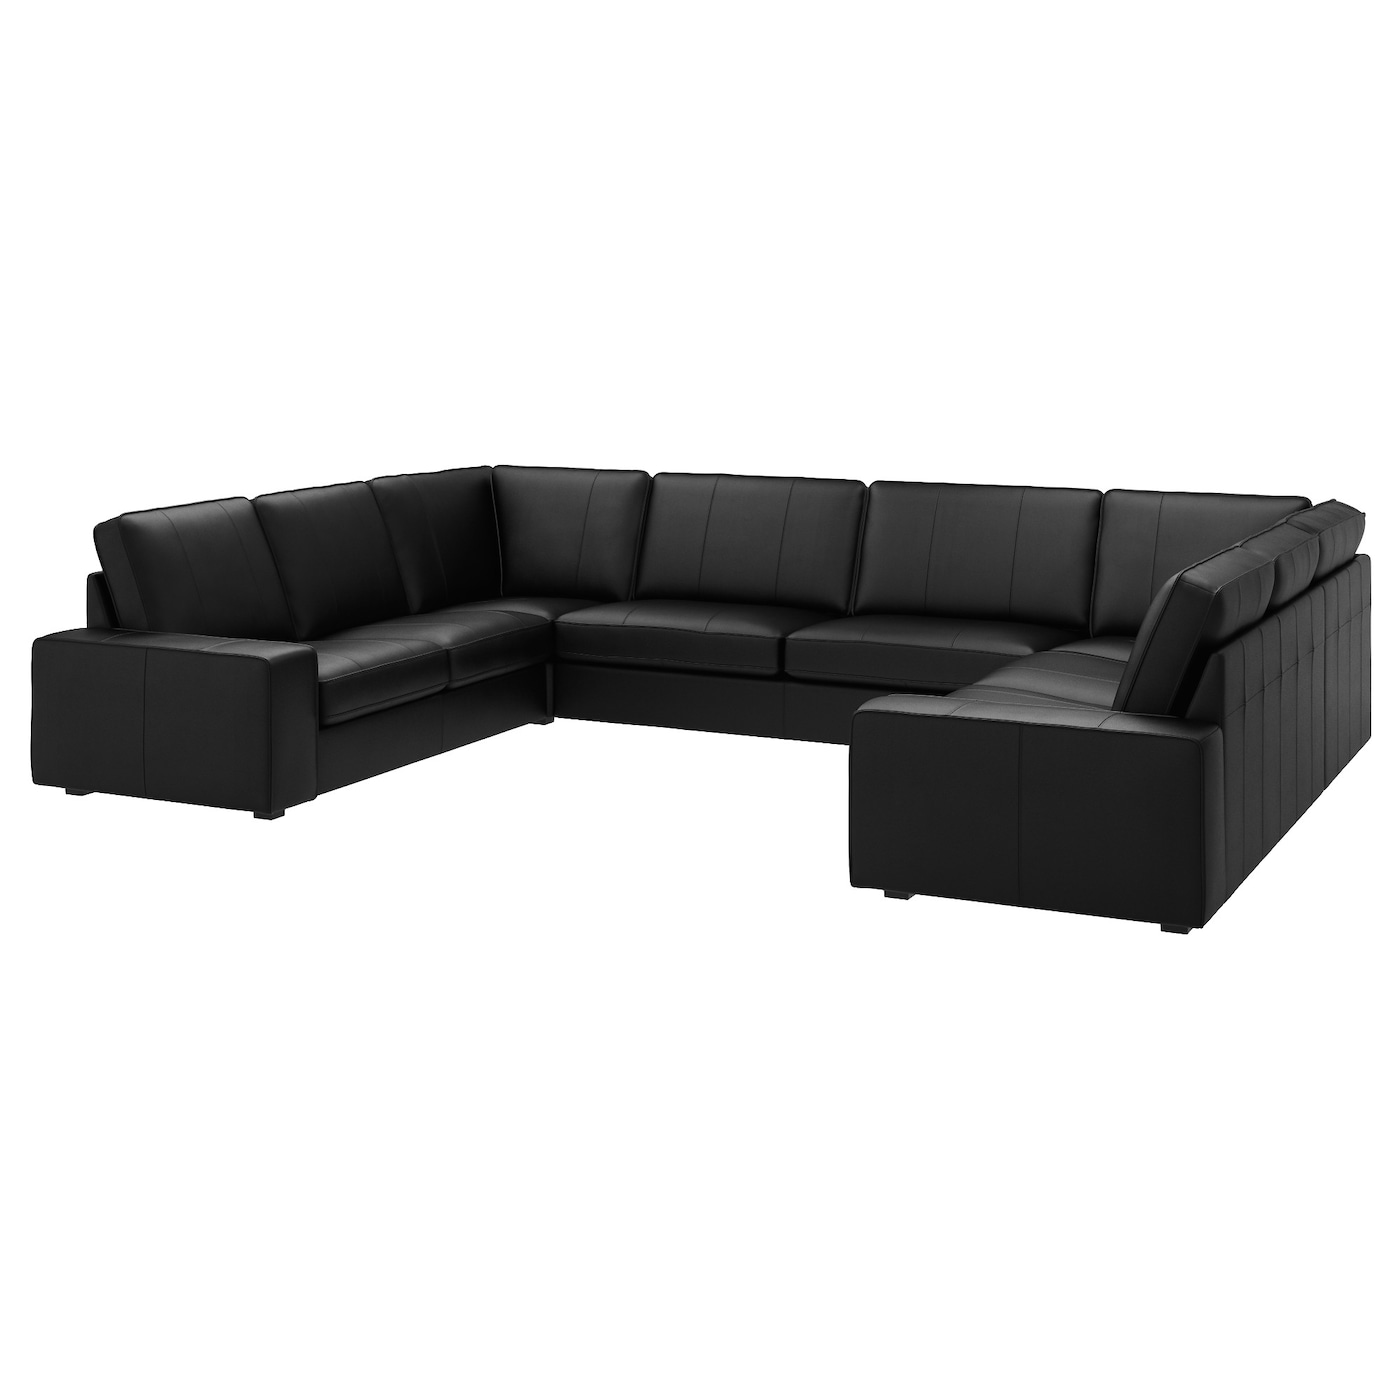 KIVIK U shaped sofa 7 seat Grann bomstad black IKEA